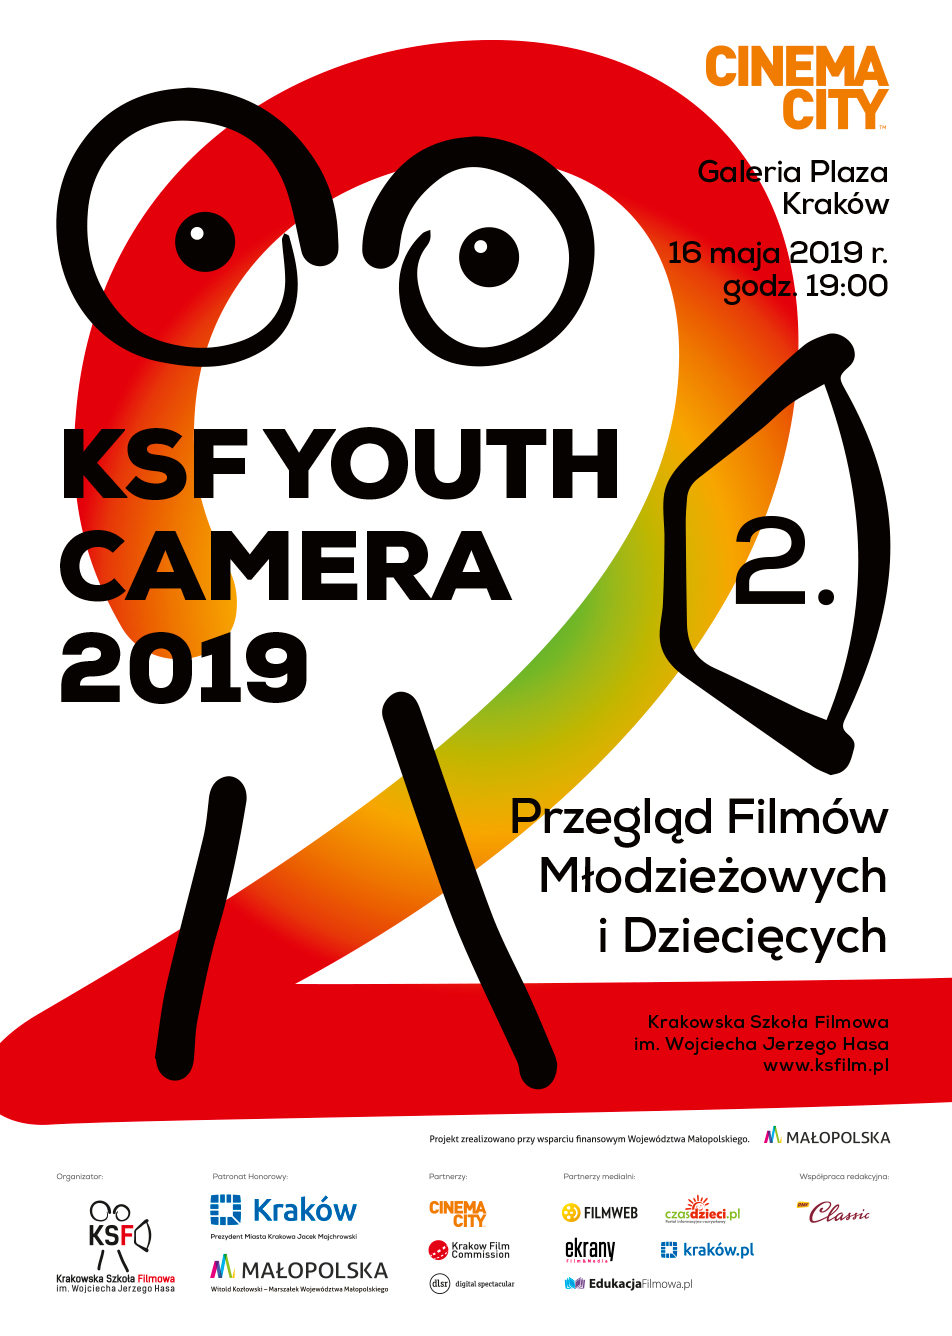 KSF YOUTH CAMERA 2019, Cinema City